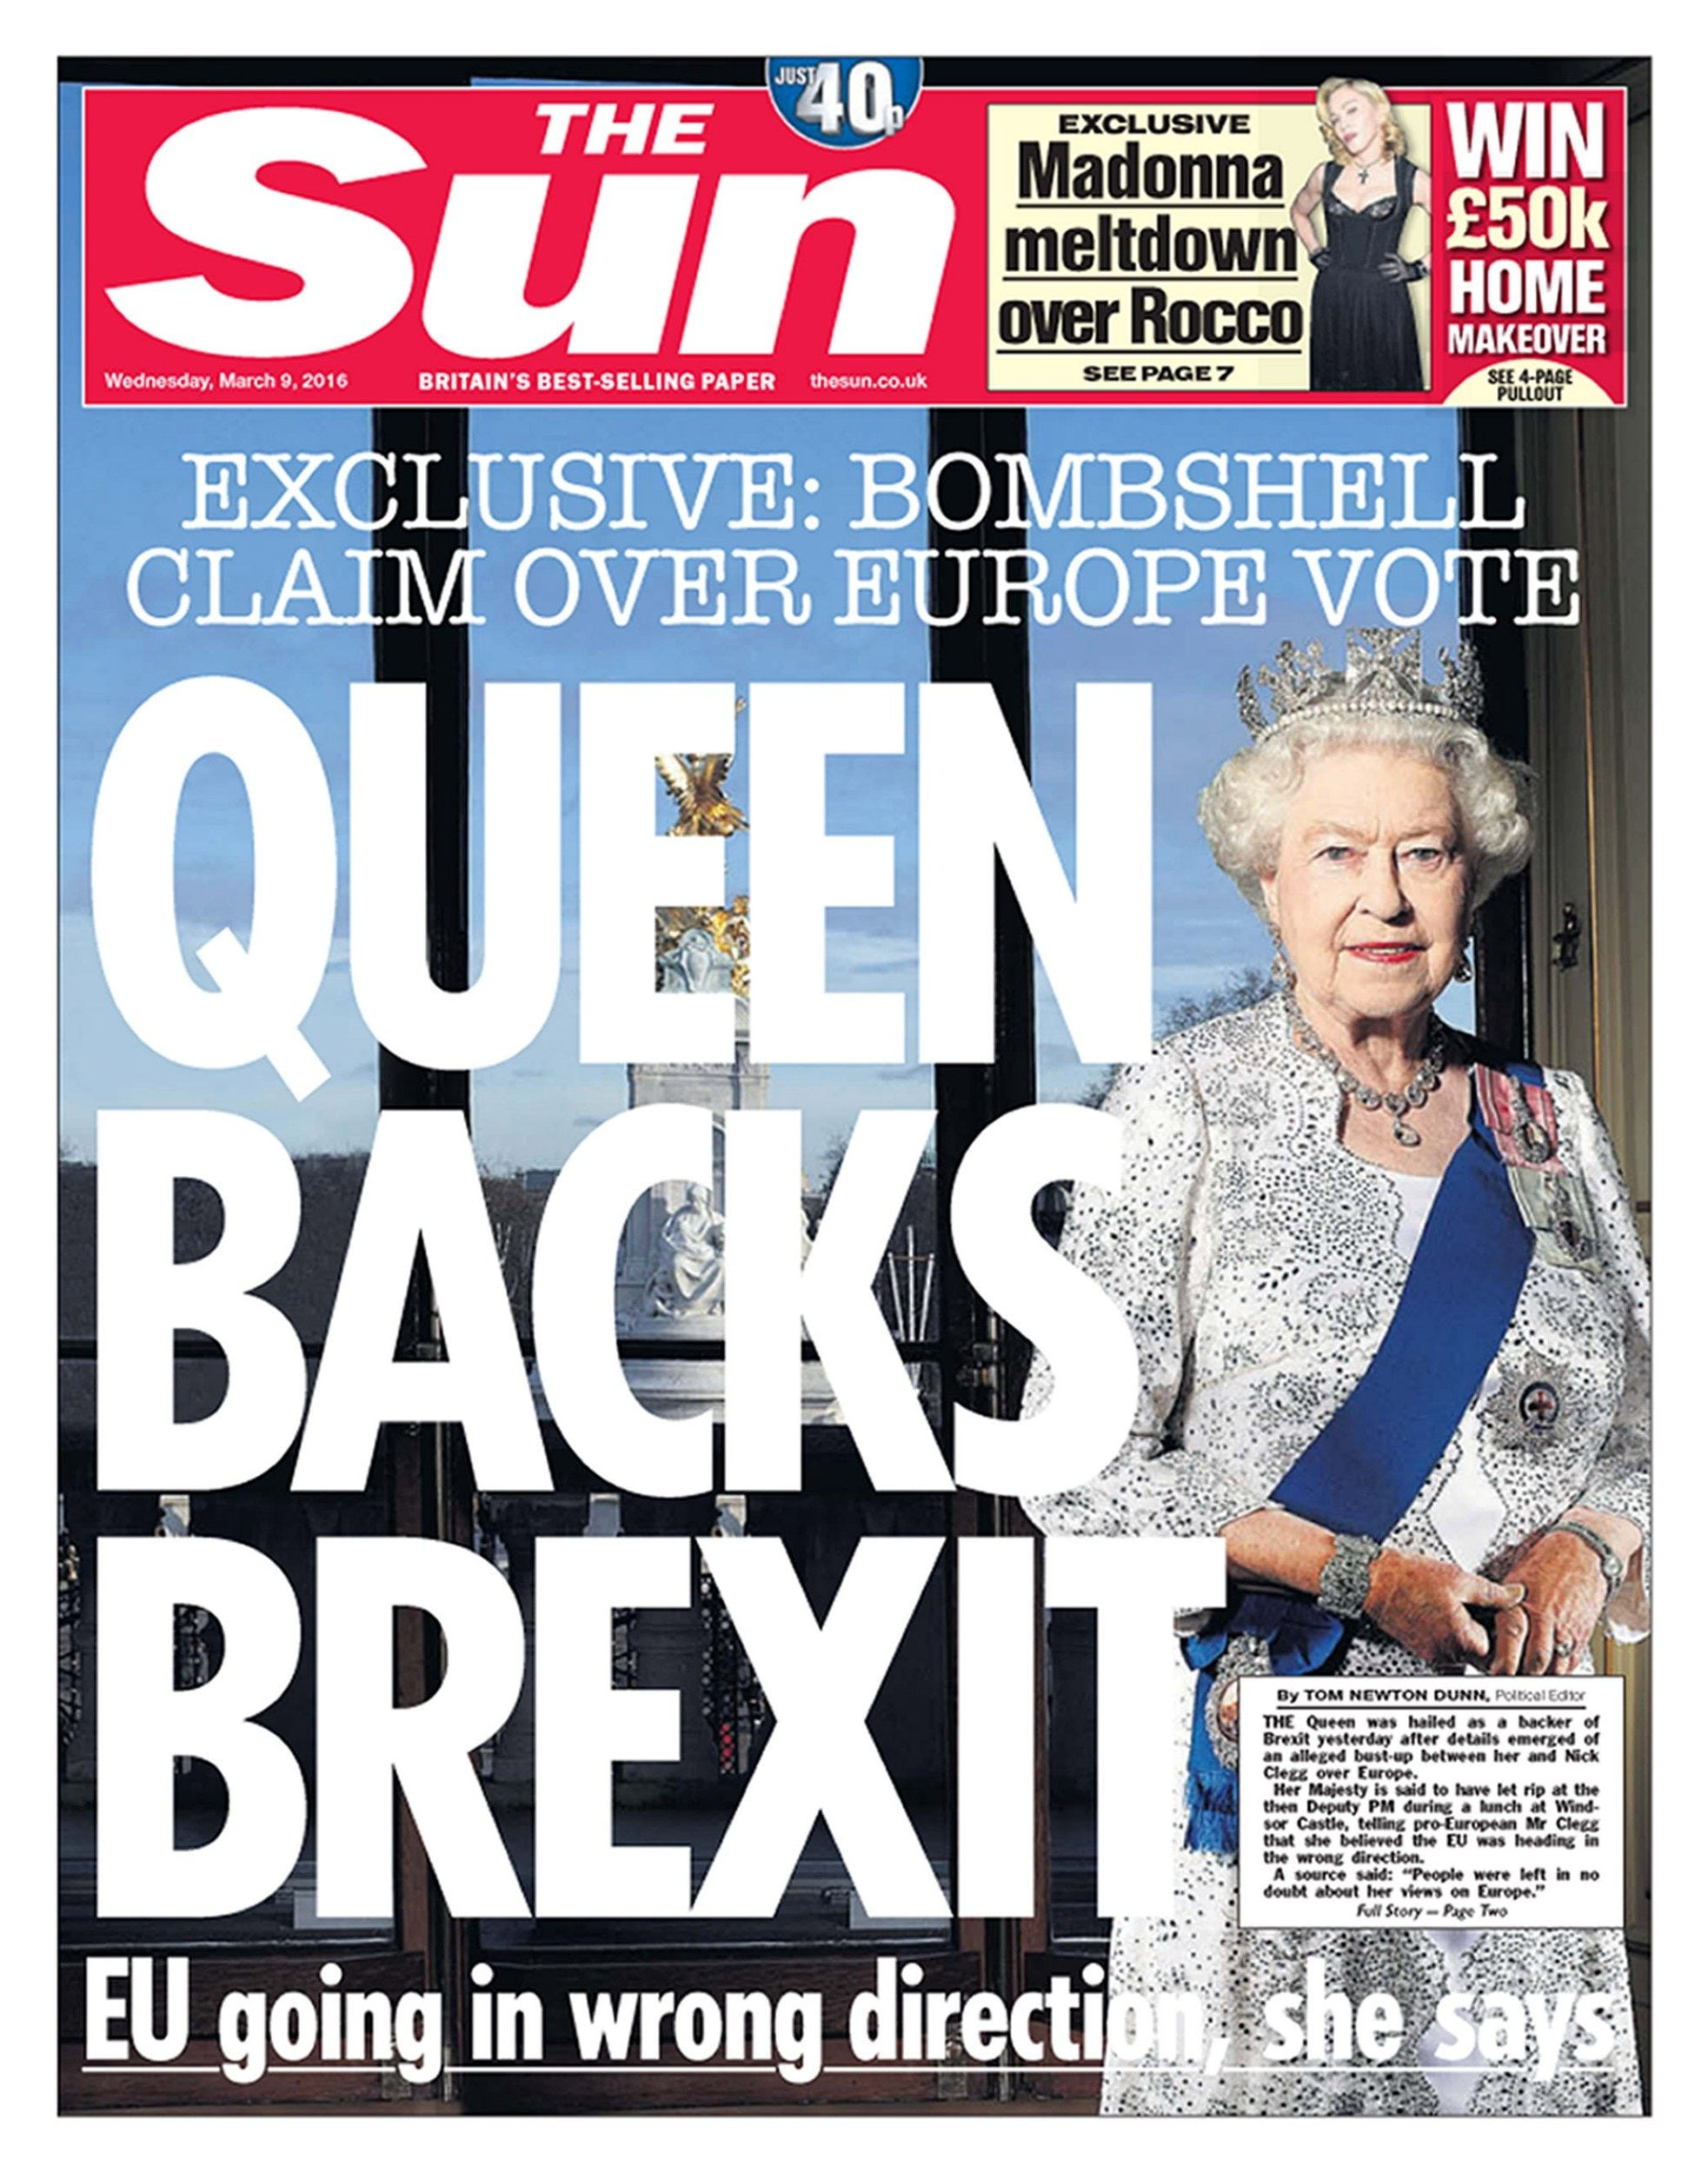 The front page of The Sun newspaper in March last year